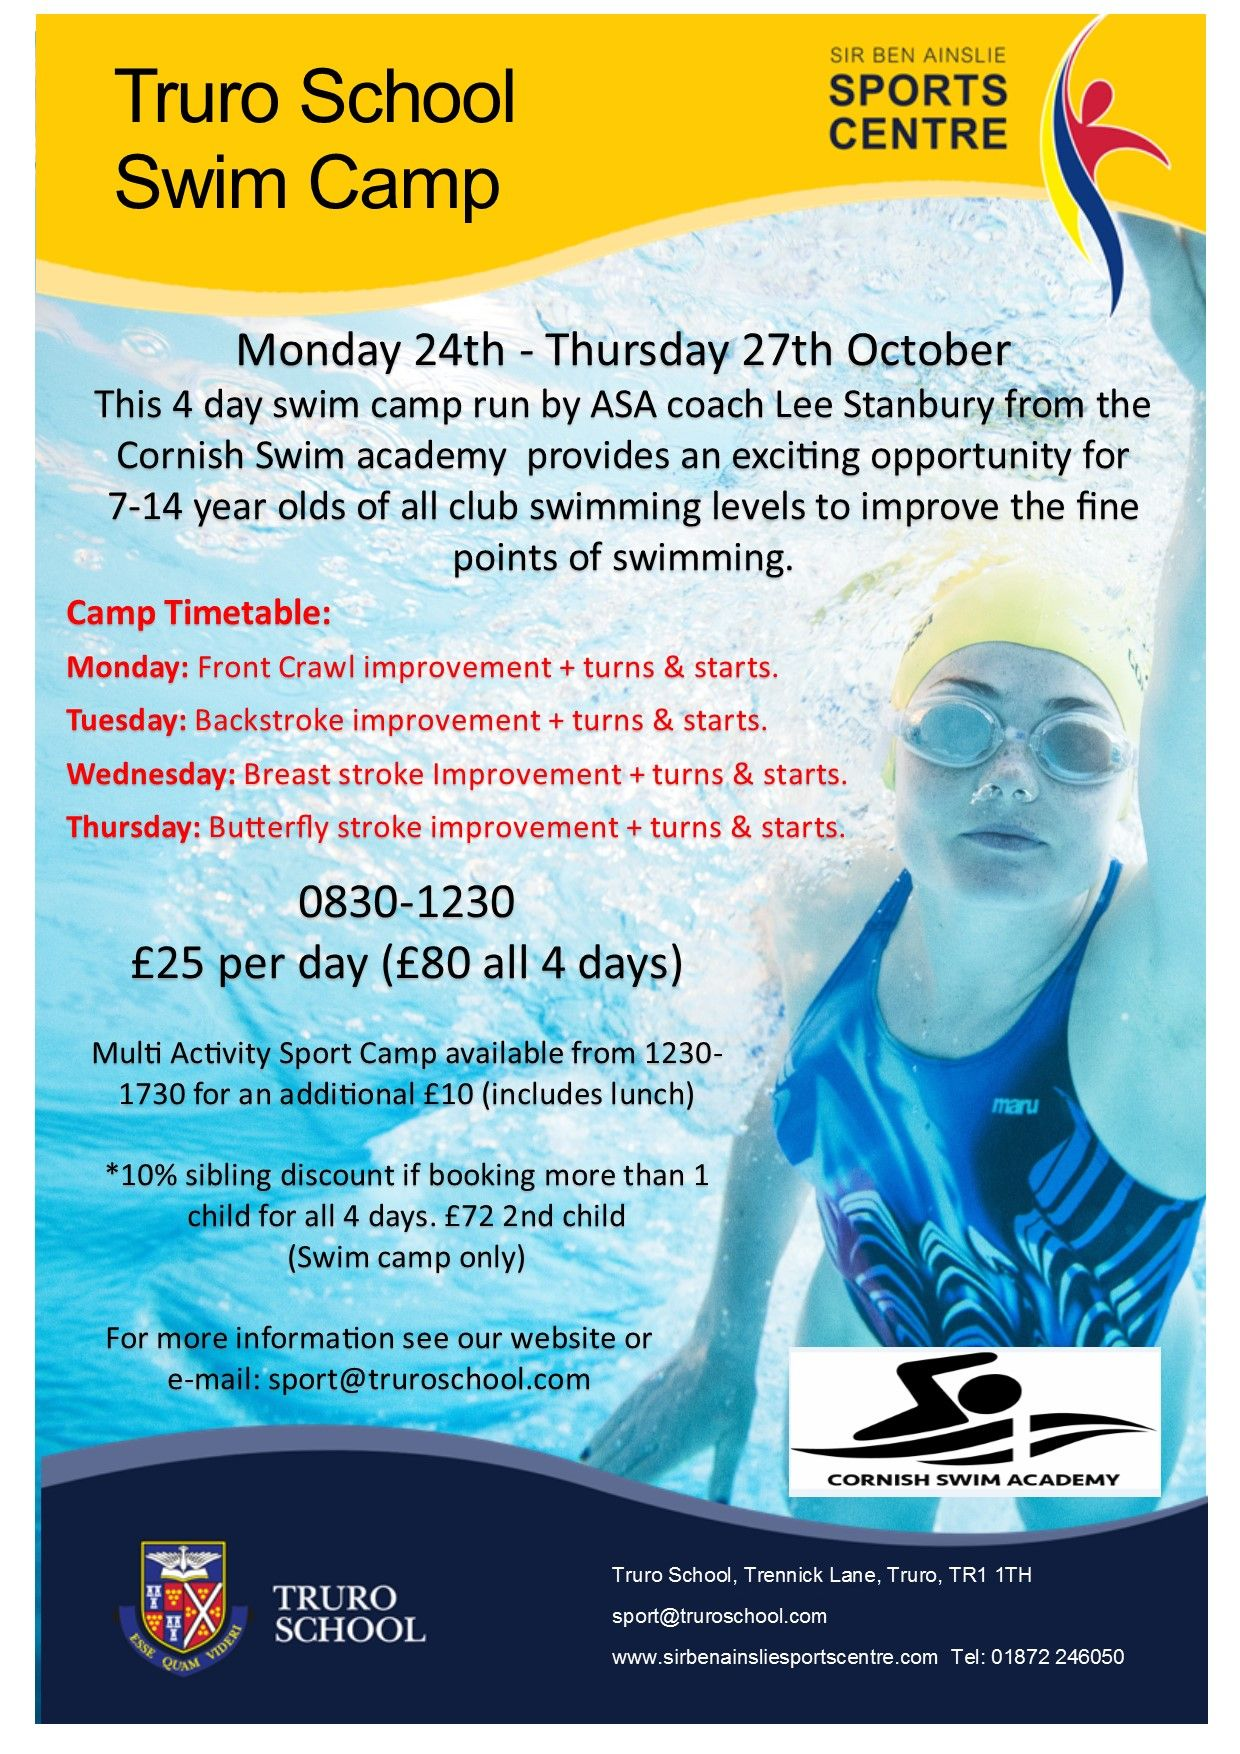 Truro School Swim Camp Sir Ben Ainslie Sports Centre